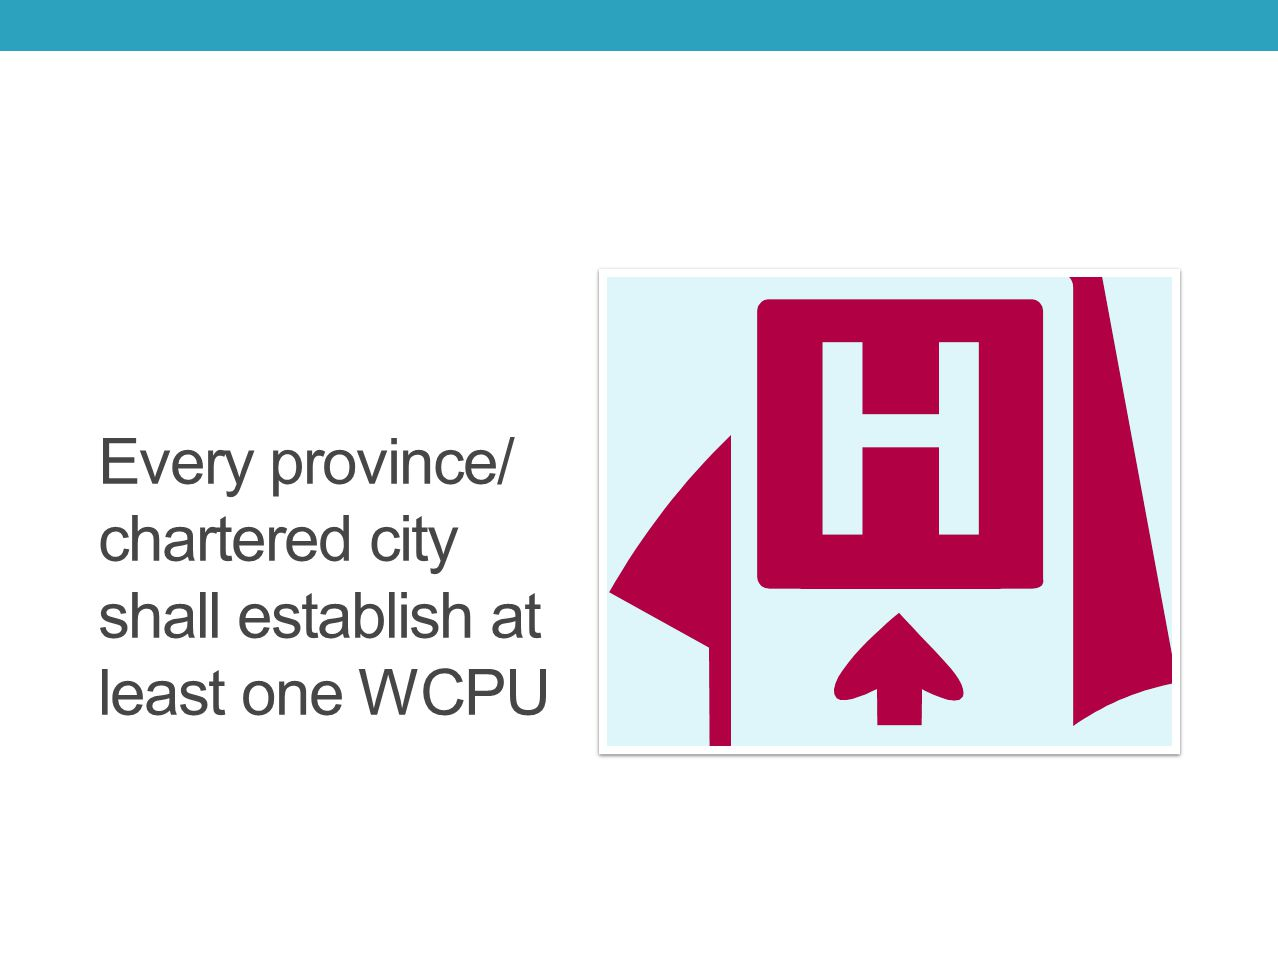 Every province/ chartered city shall establish at least one WCPU